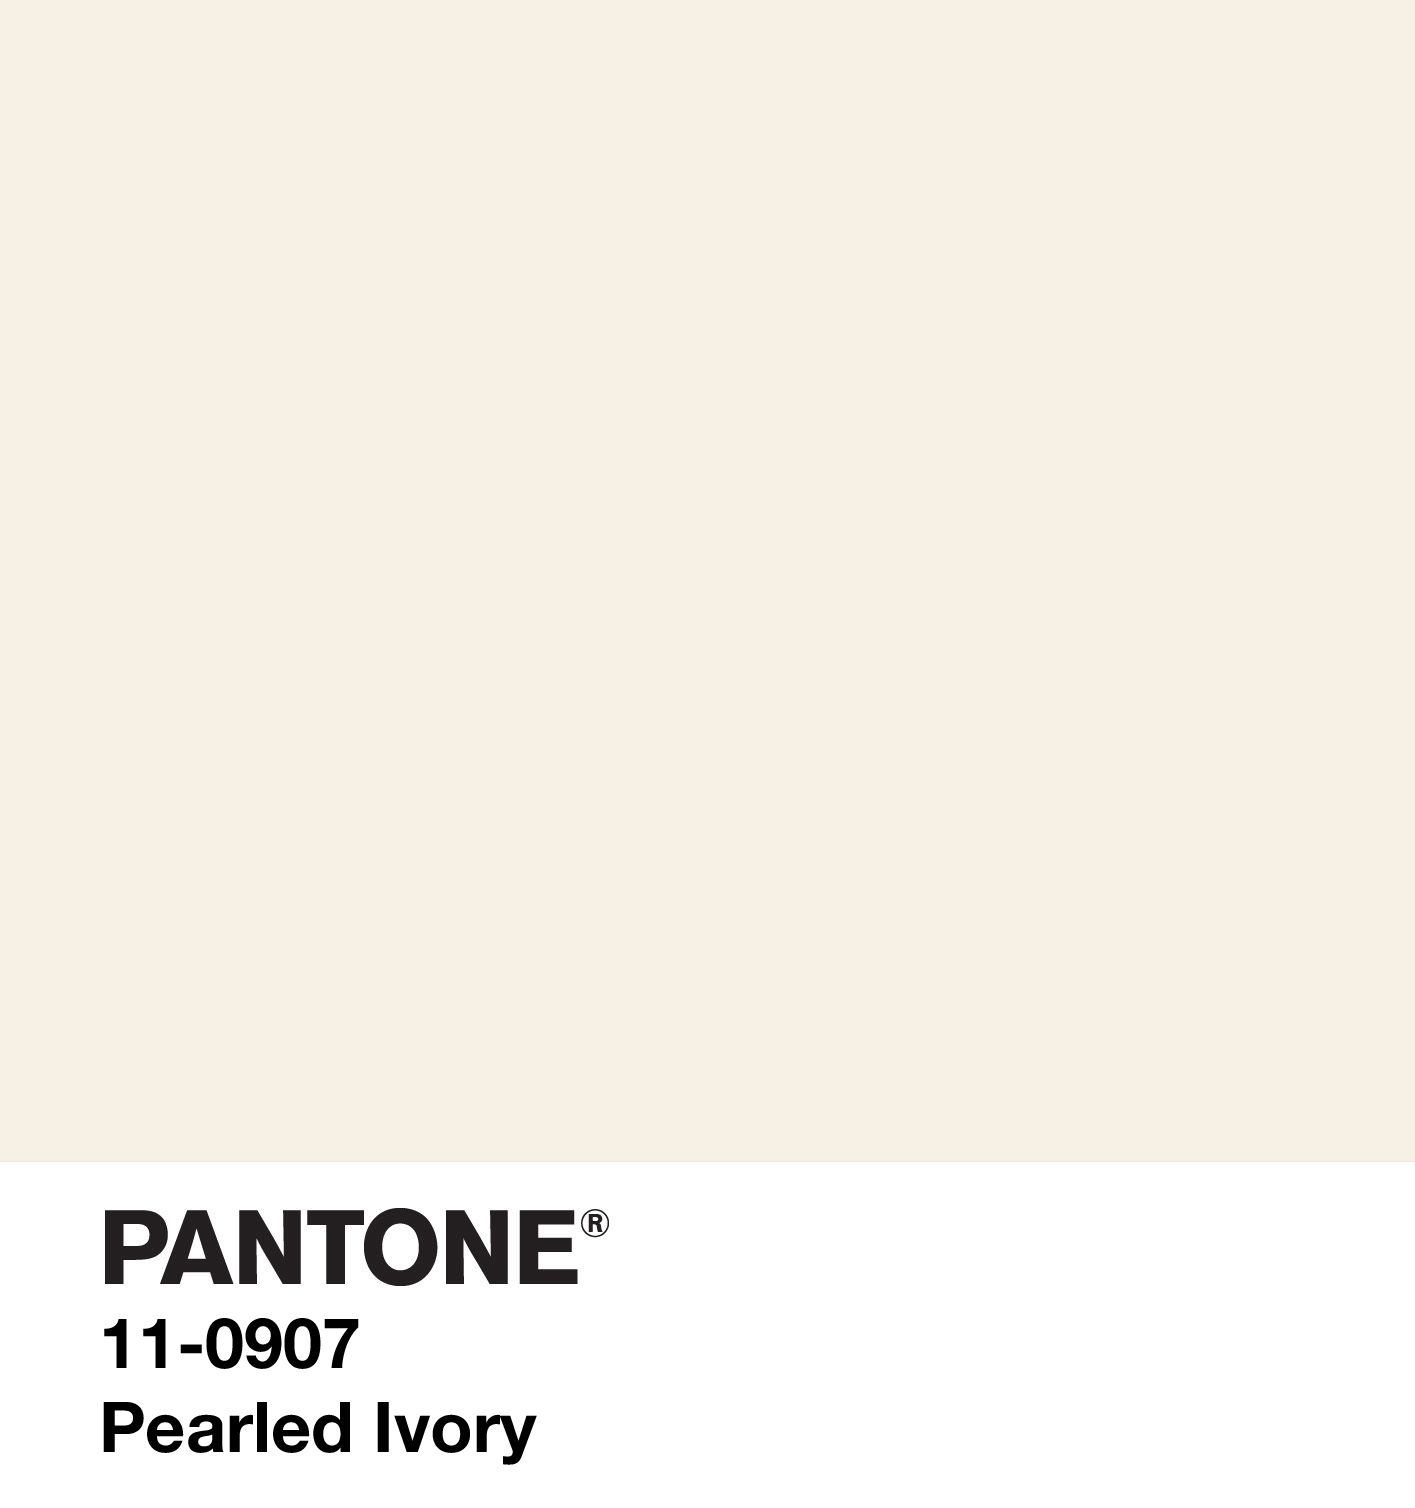 PANTONE 11-0907 TPG Pearled Ivory Replacement Page